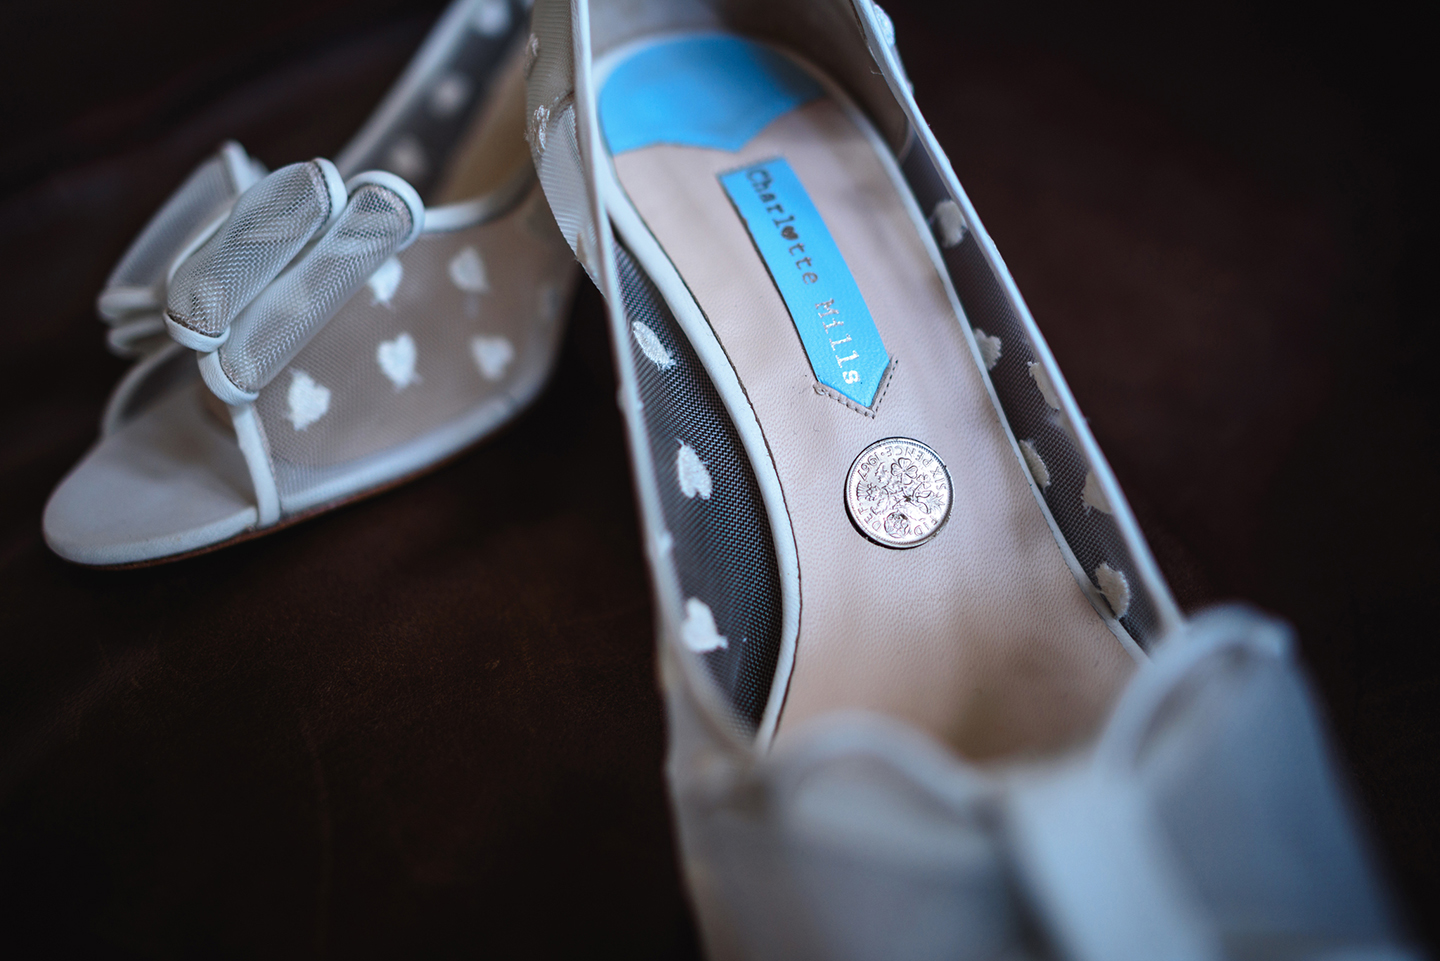 The bride wore wedding shoes which had a mesh fabric embroidered with white hearts and a bow